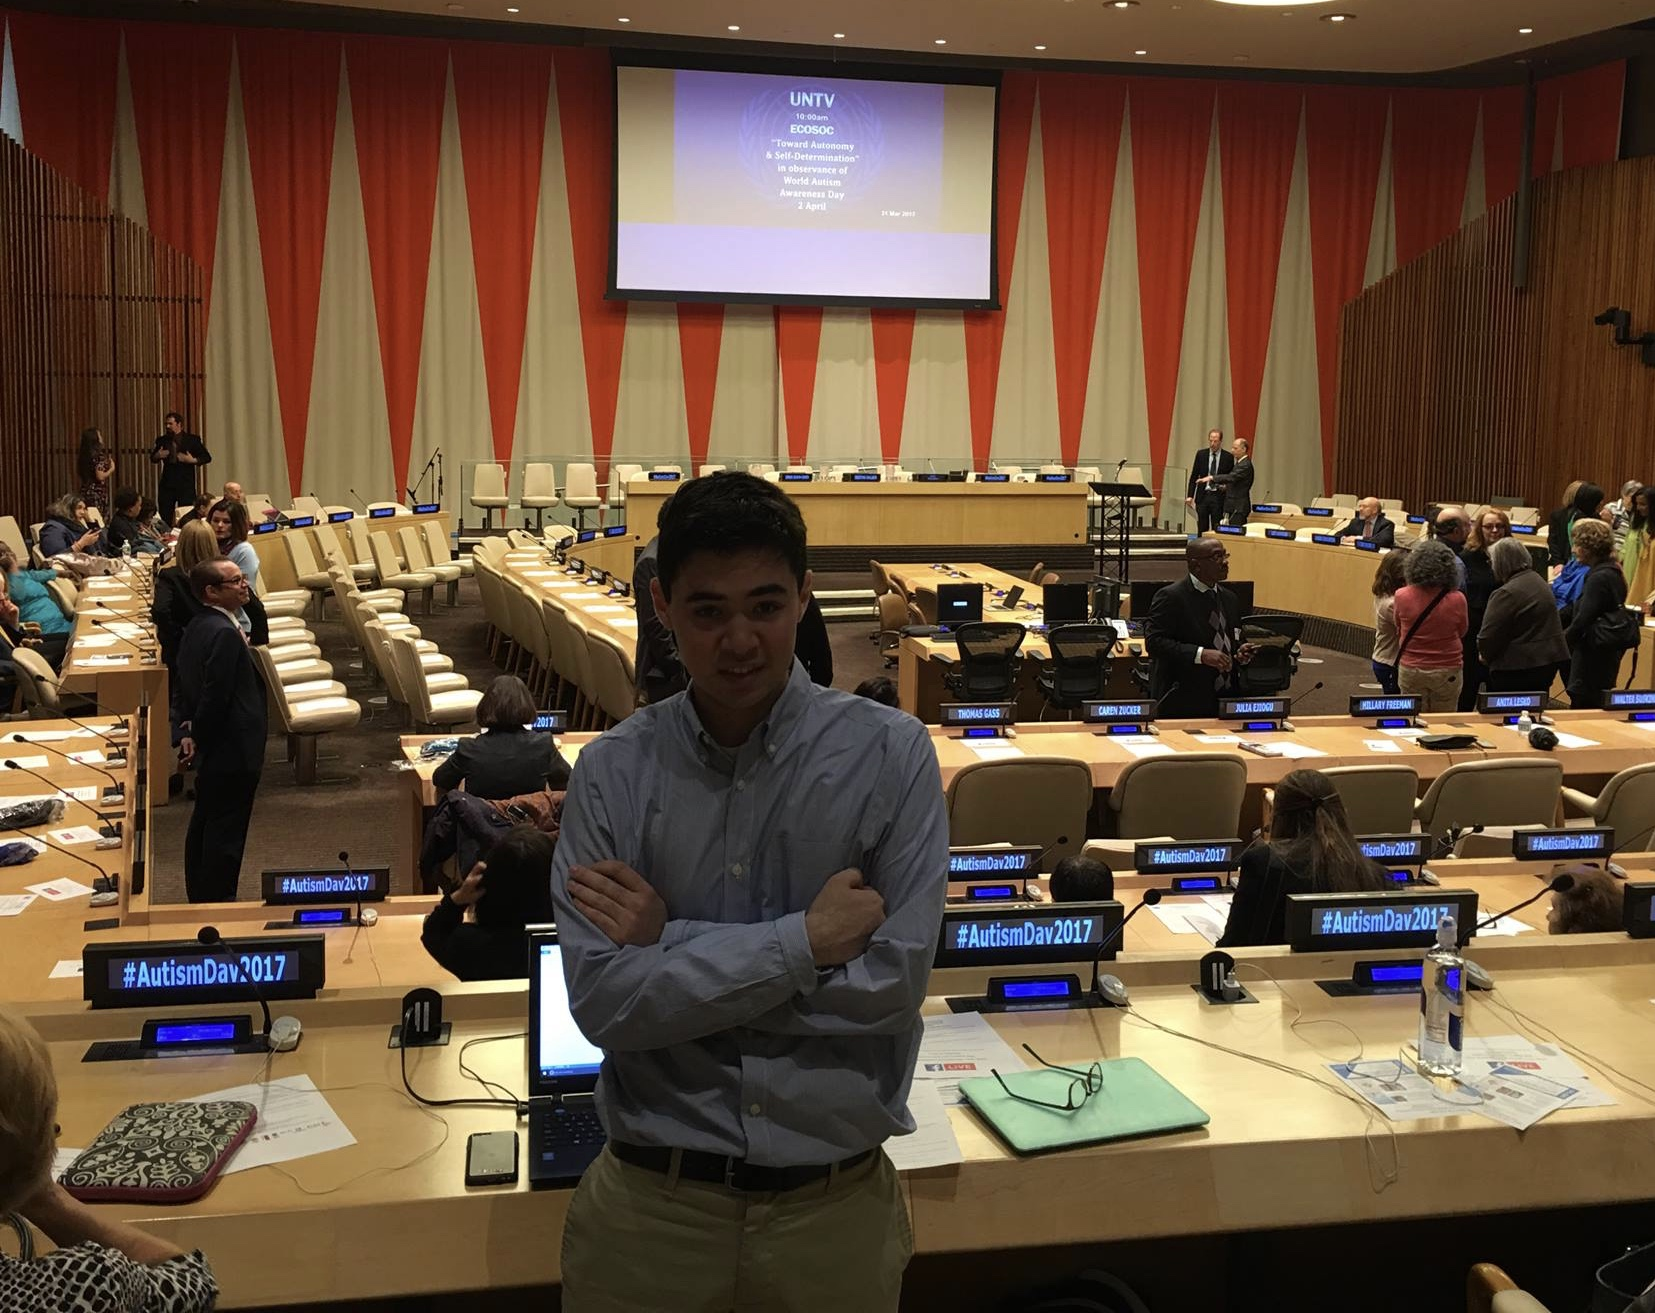 Tom at World Autism Awareness Day 2017 at the United Nations, standing in front of tables with microphones and the stage in the background